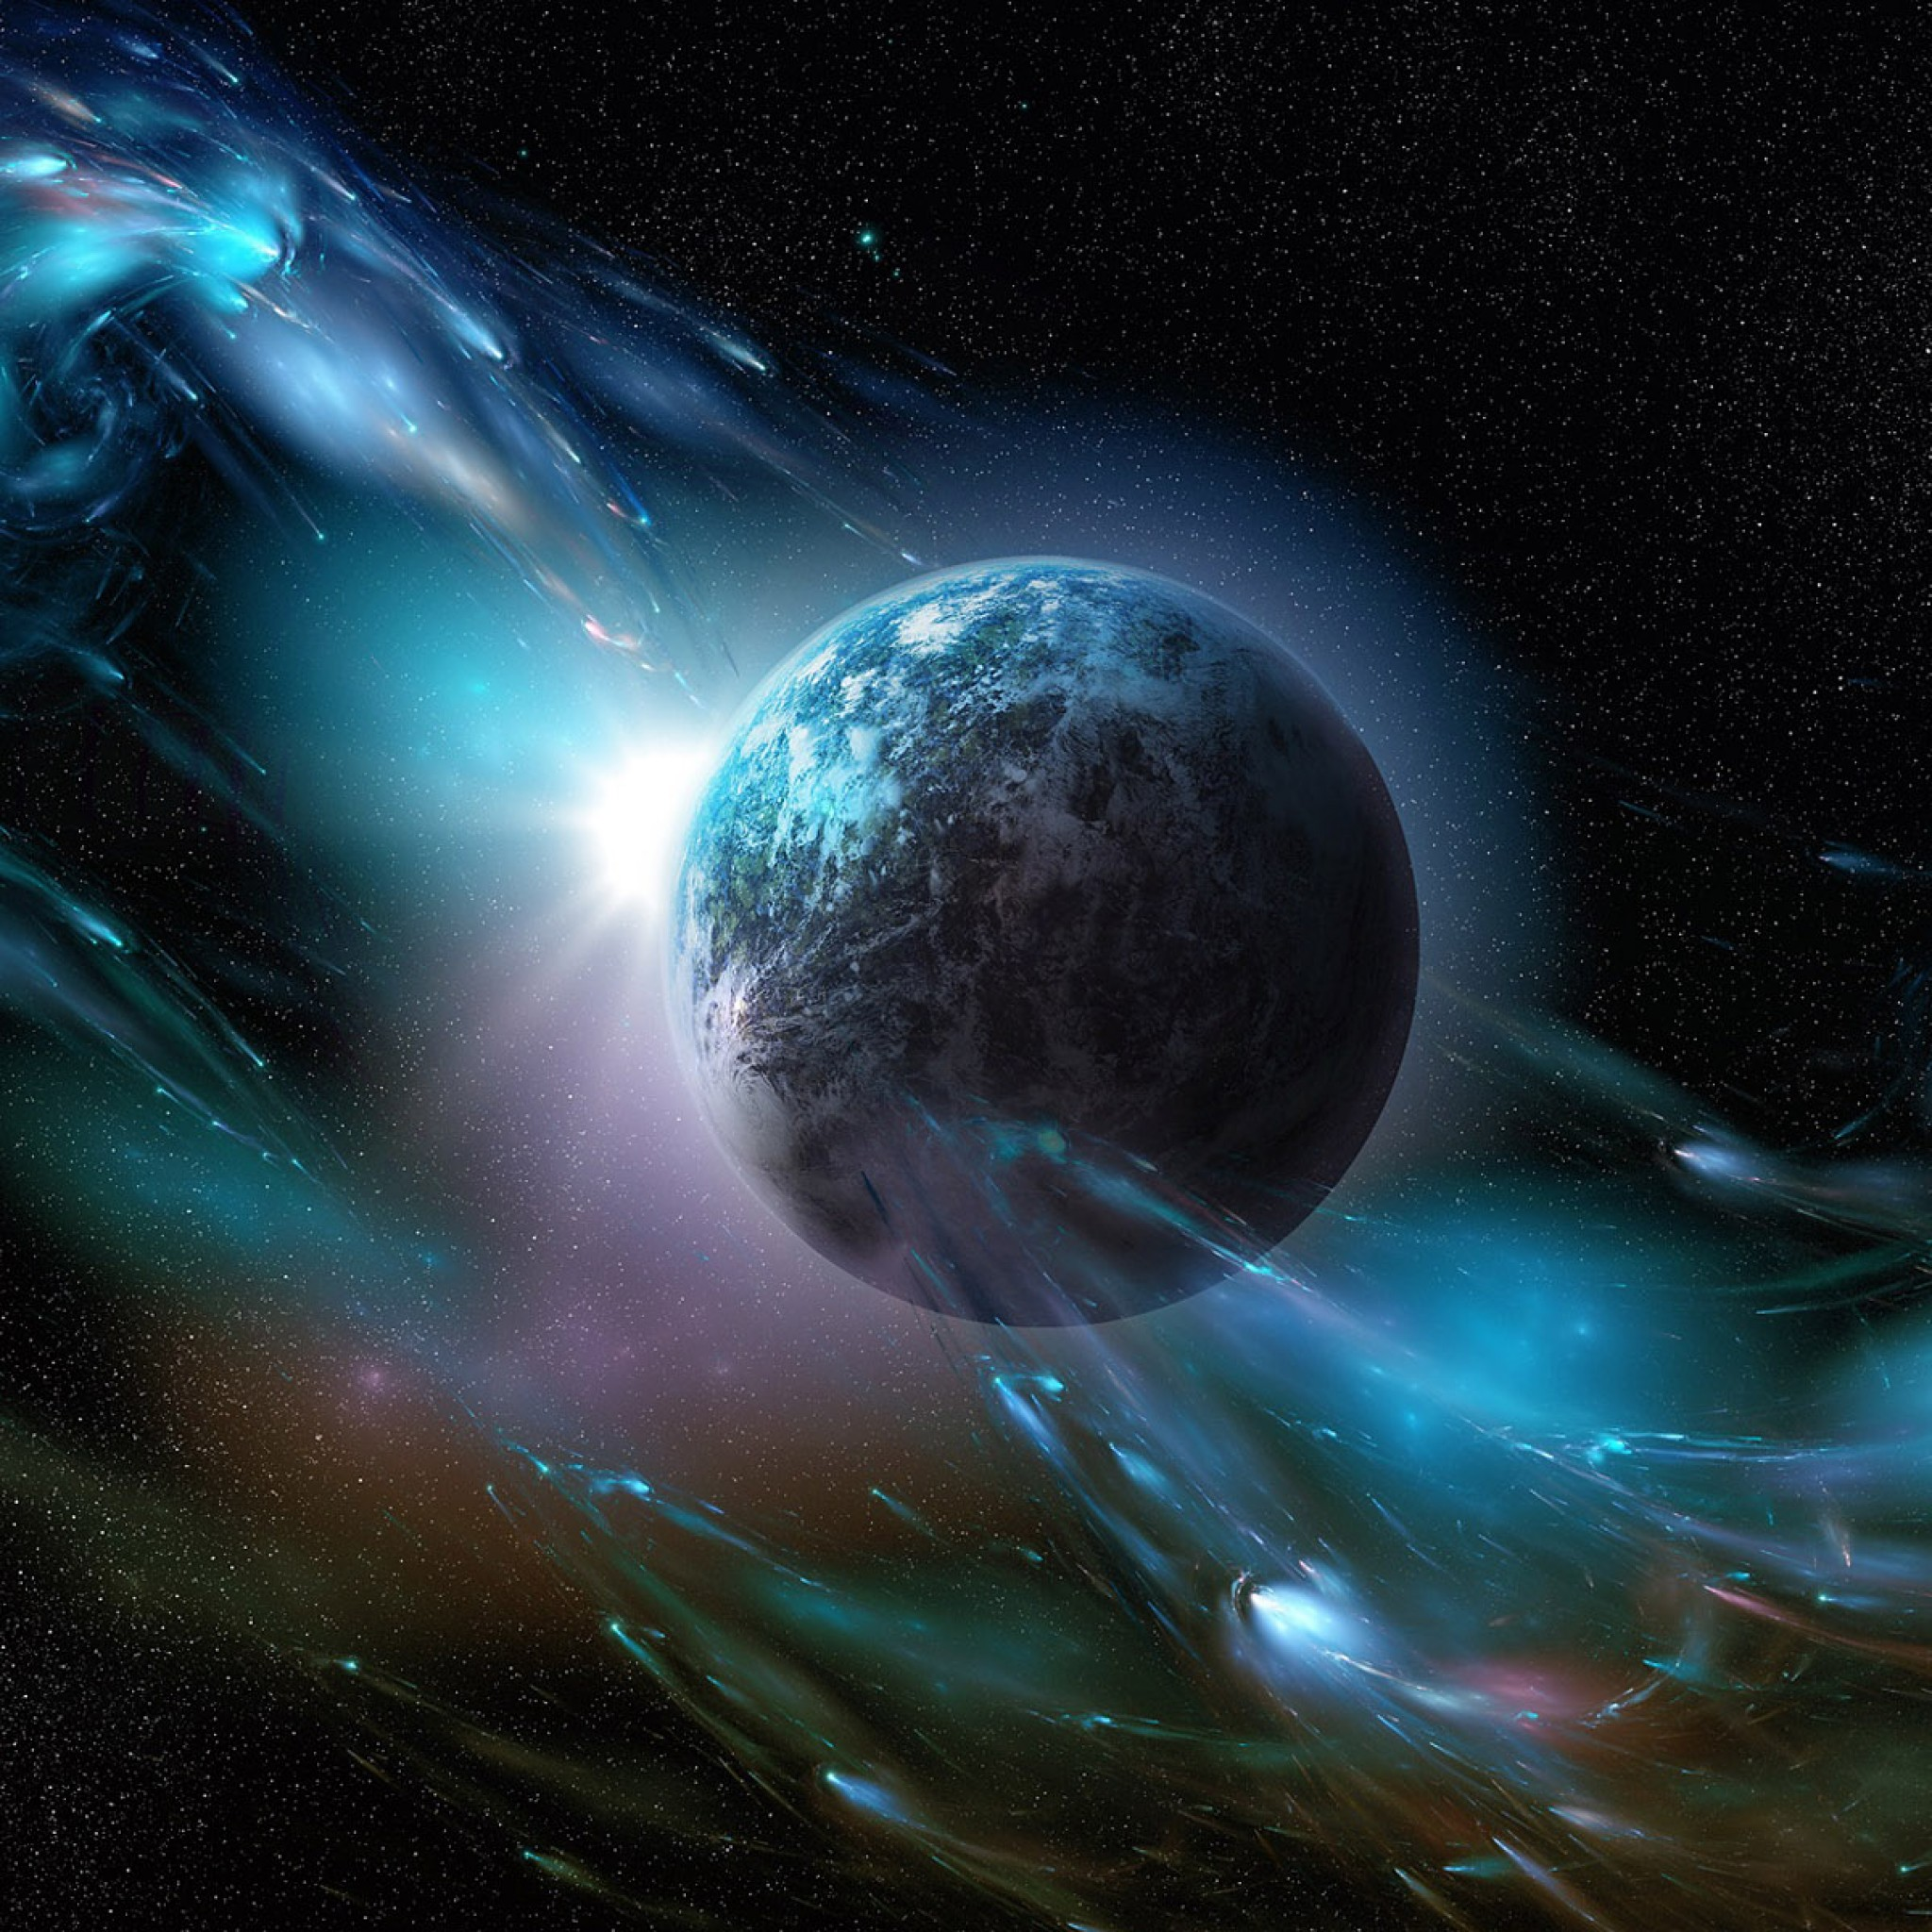 30 Hd Space Ipad Wallpapers Cool Space Wallpapers For Ipad